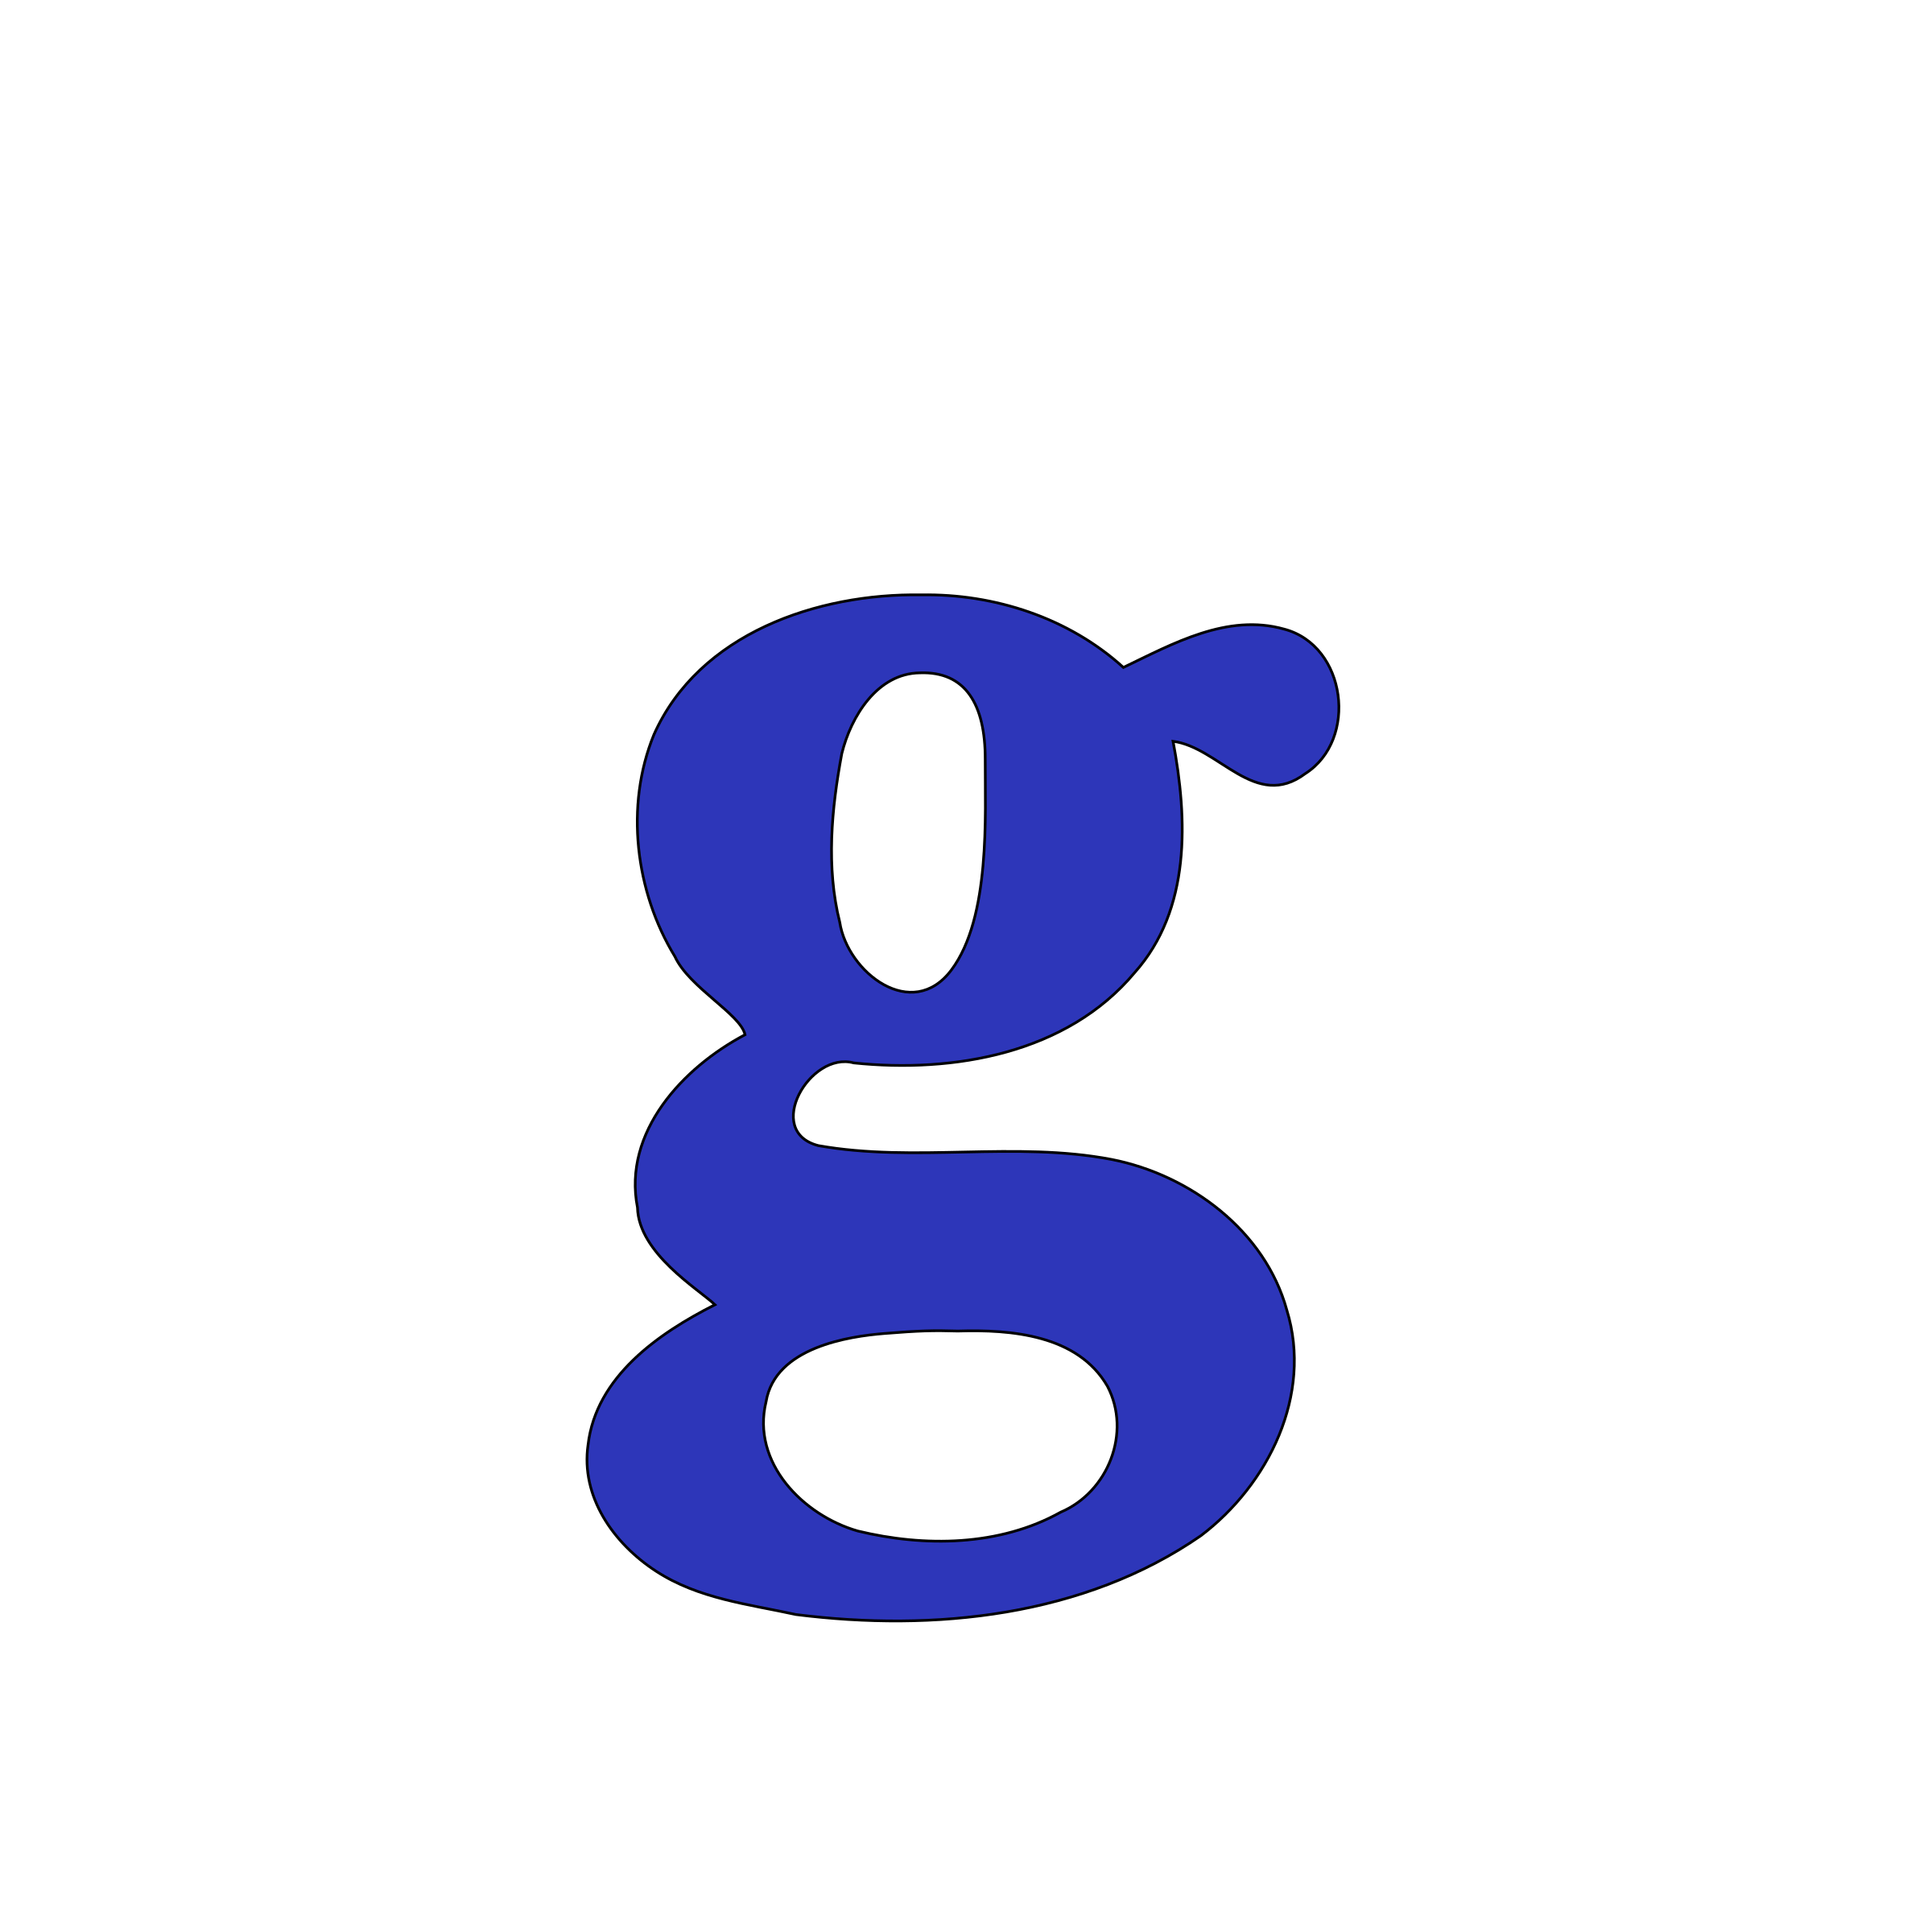 lowercase g by tuamora